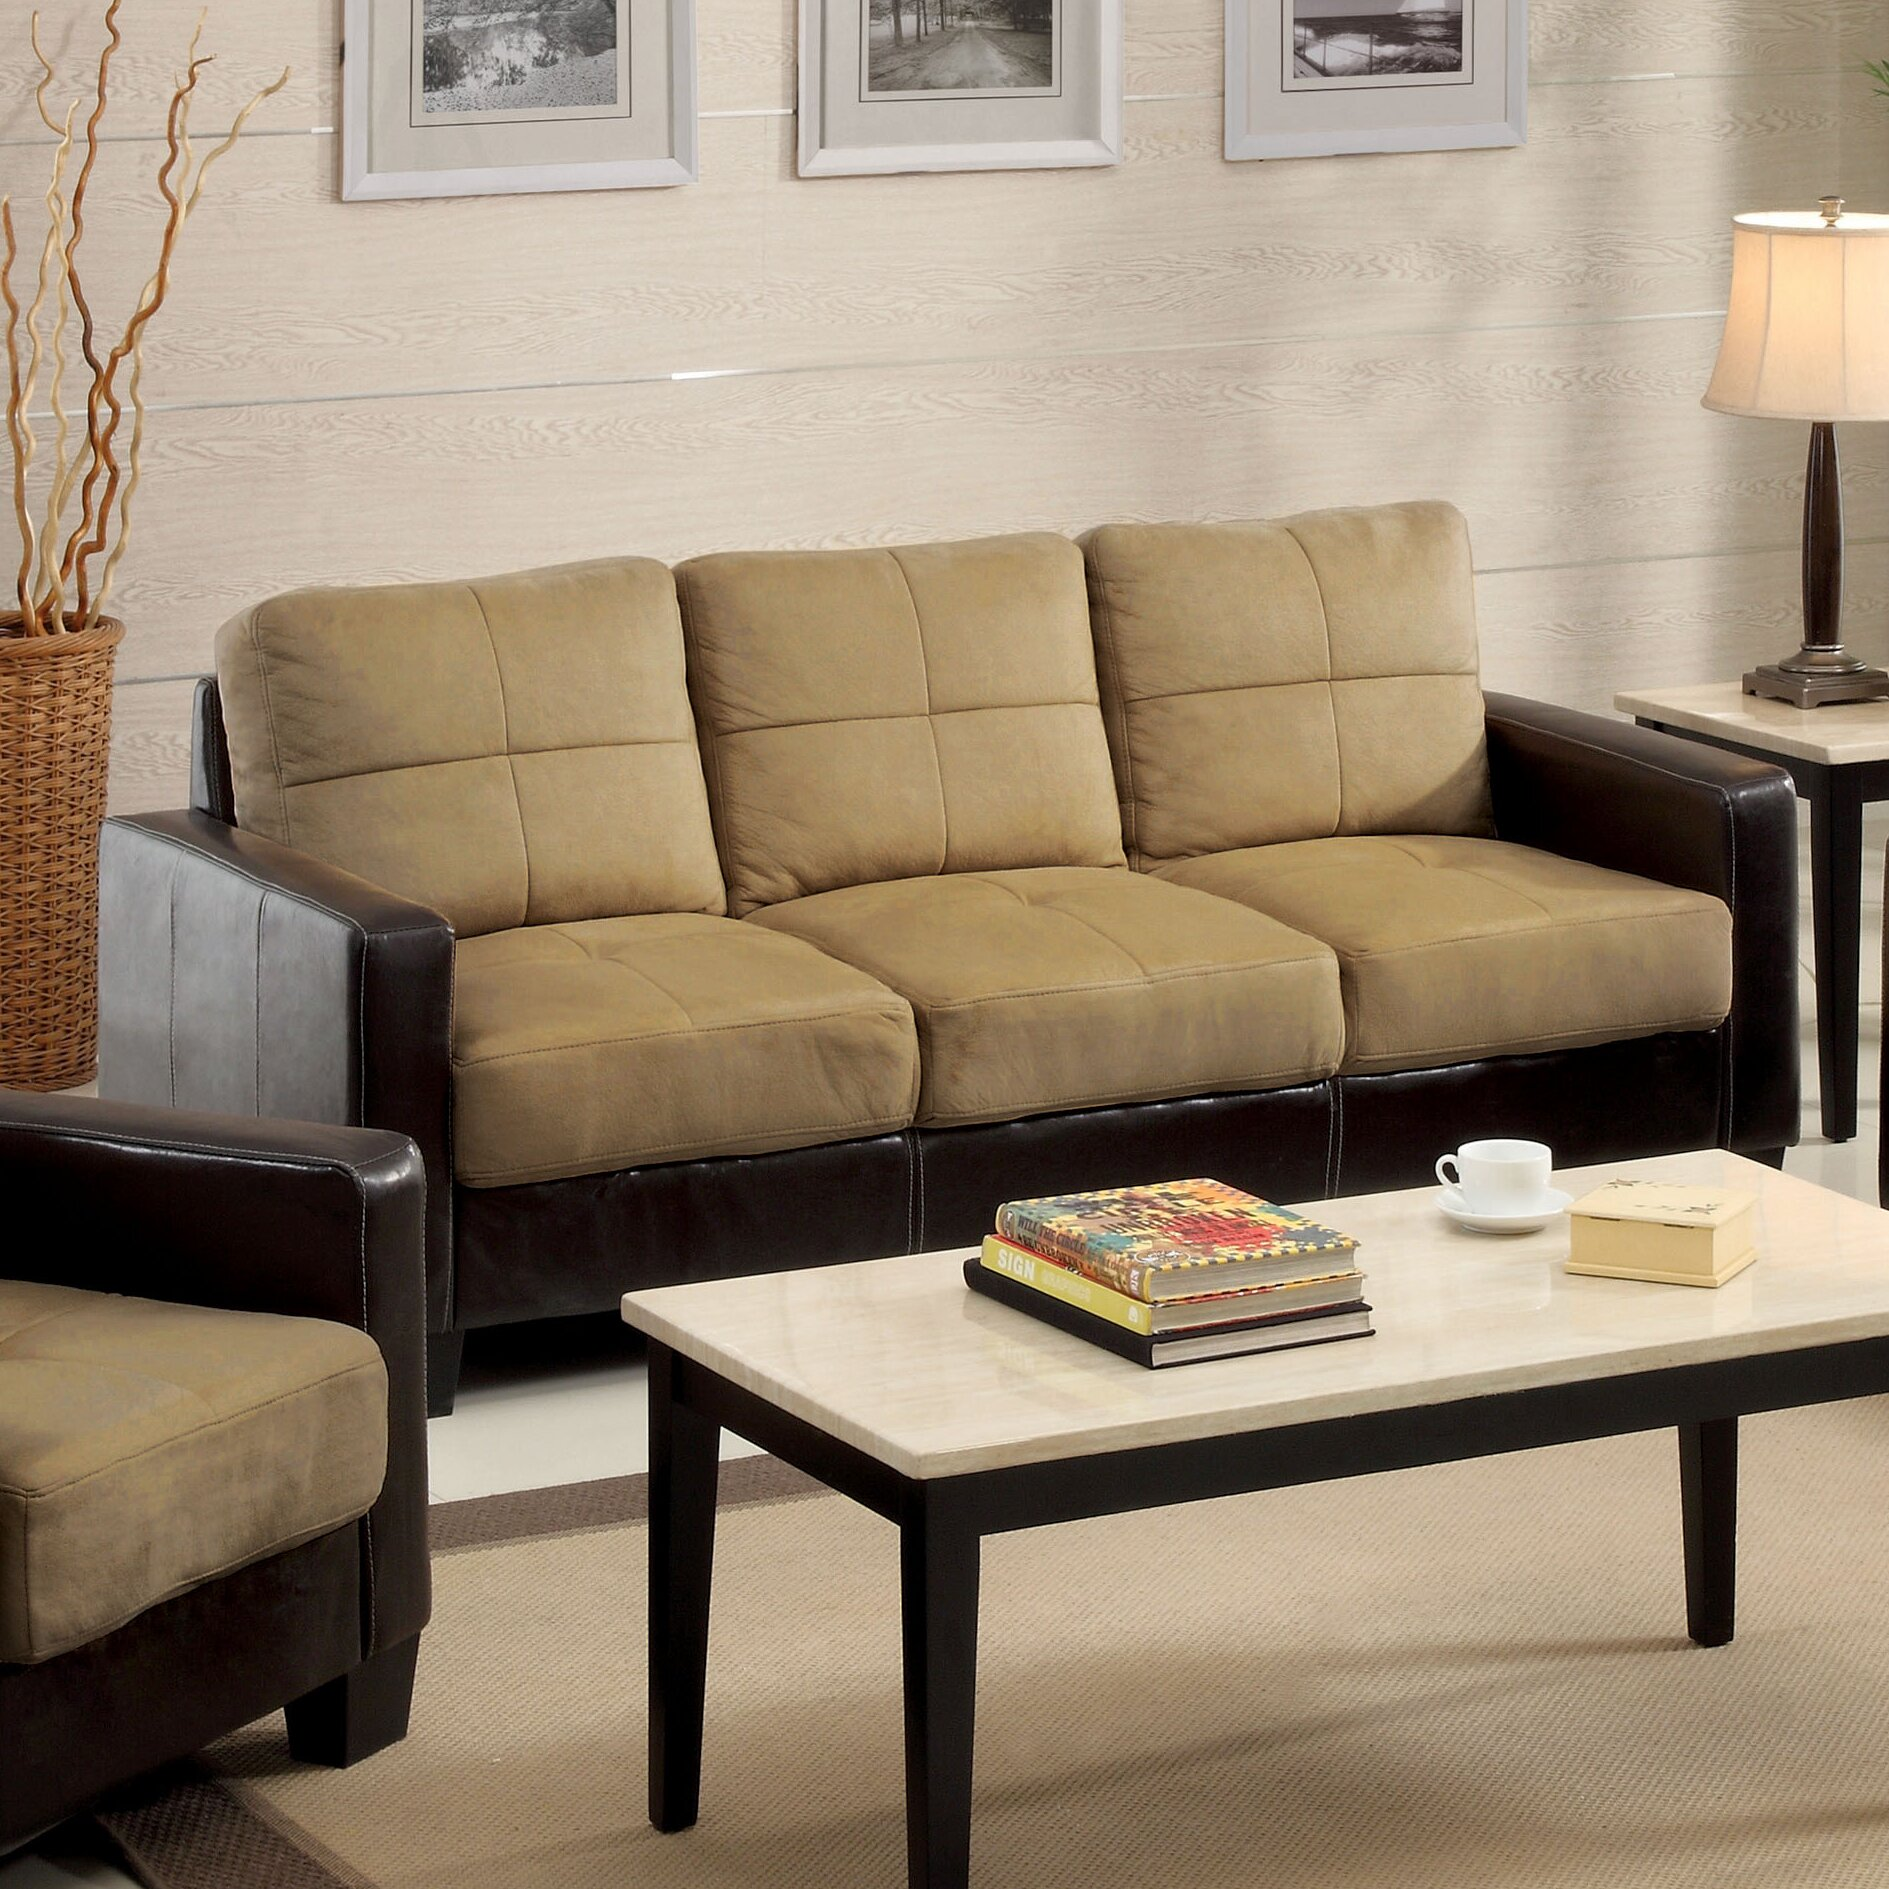 hokku designs townsend living room collection reviews